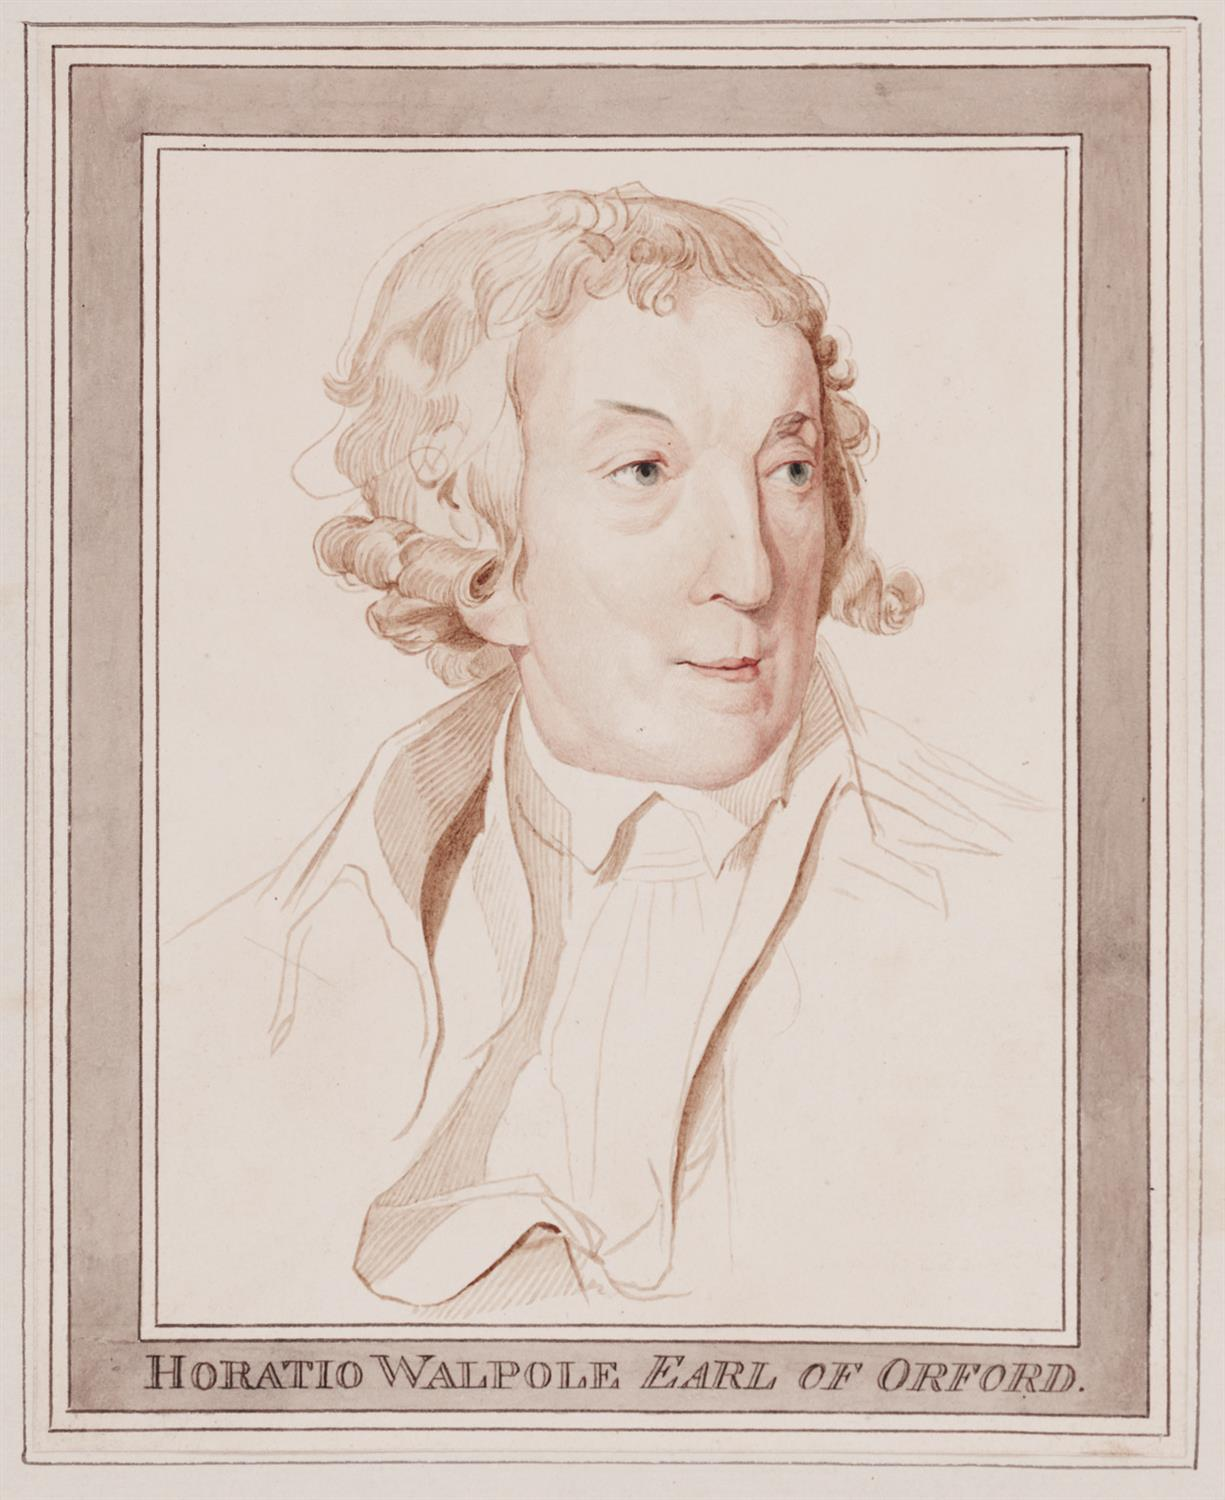 Bust-length portrait of Horace Walpole, head turned in three-quarter profile to look right, wearing a short wig curled at the sides; with border